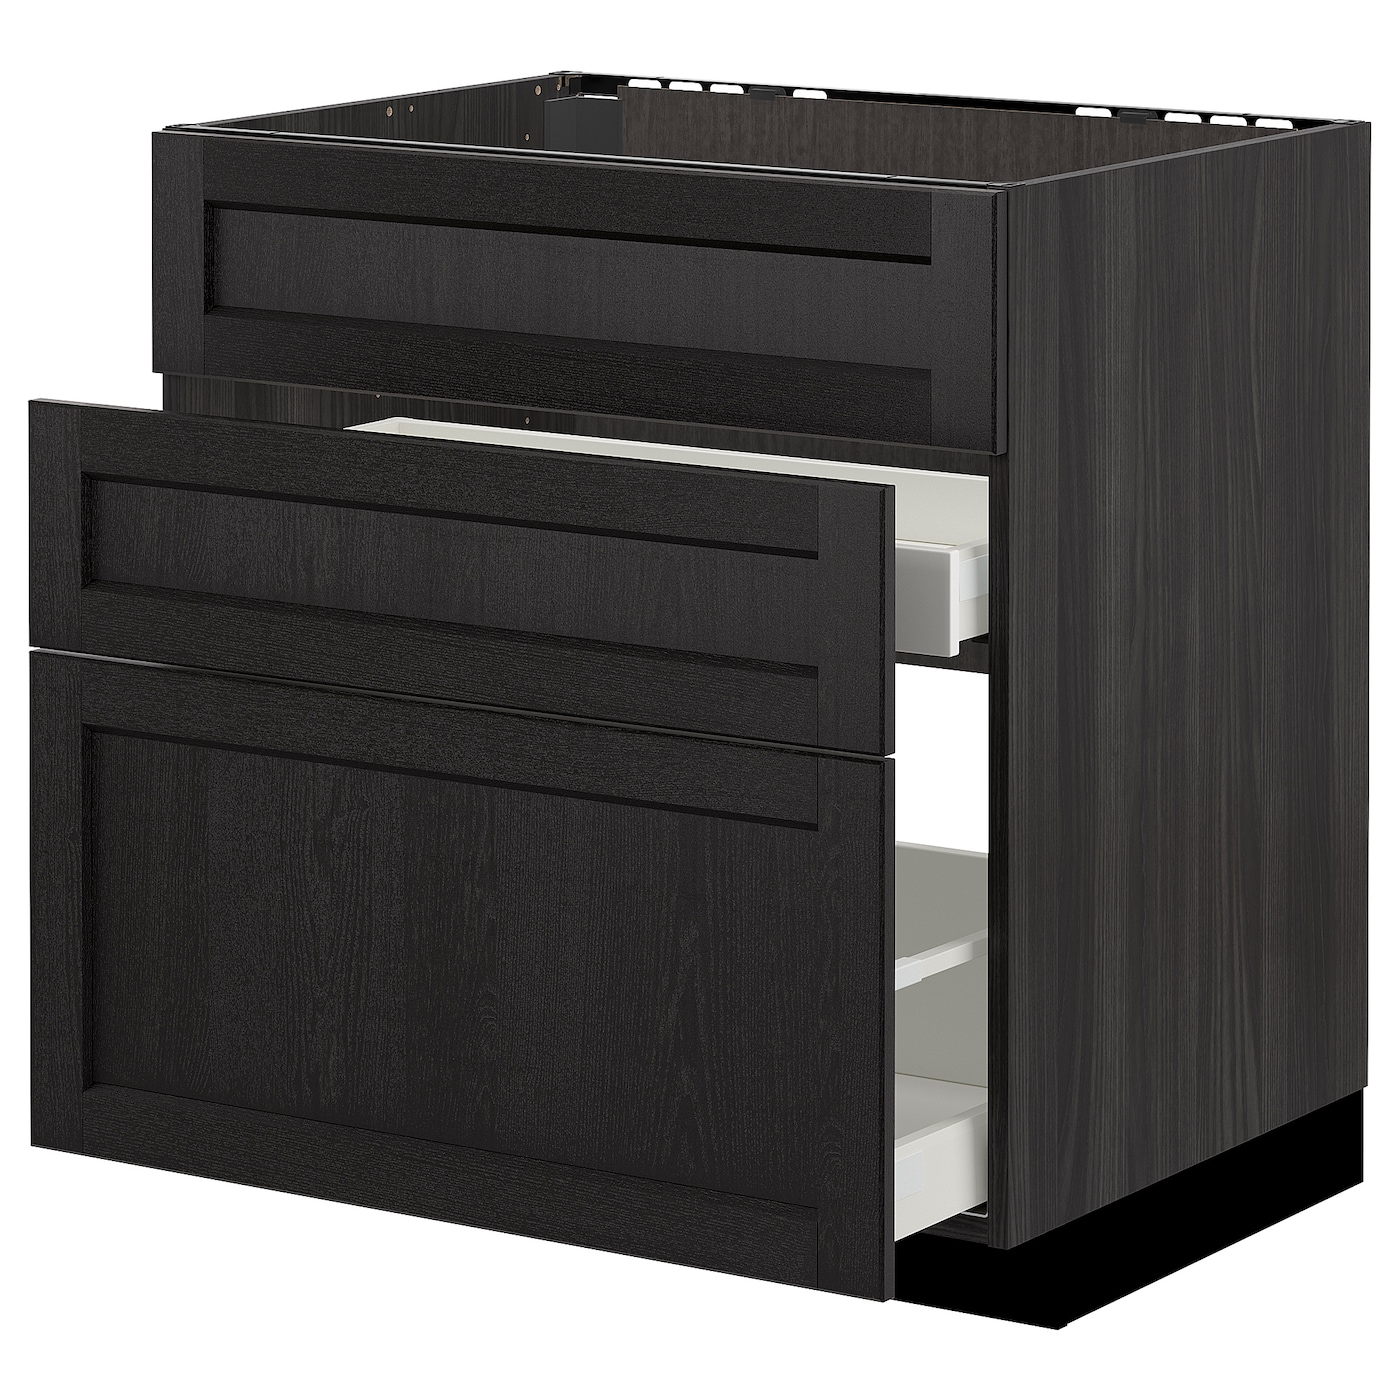 IKEA METOD base cab f sink+3 fronts/2 drawers Smooth-running drawer with drawer stop.